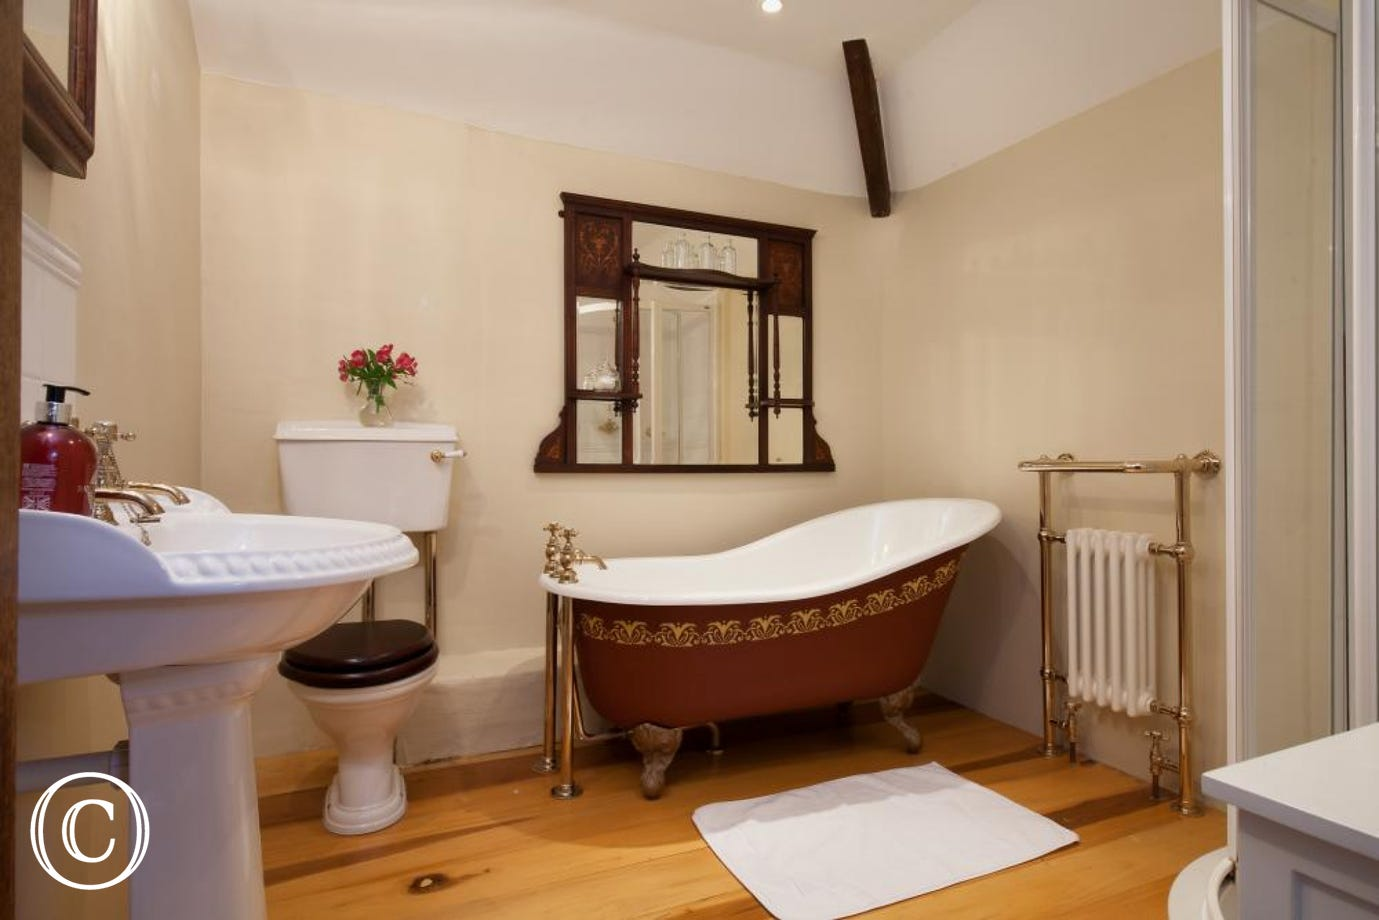 A Traditional Family Bathroom with roll top Bath and Separate Shower cubicle